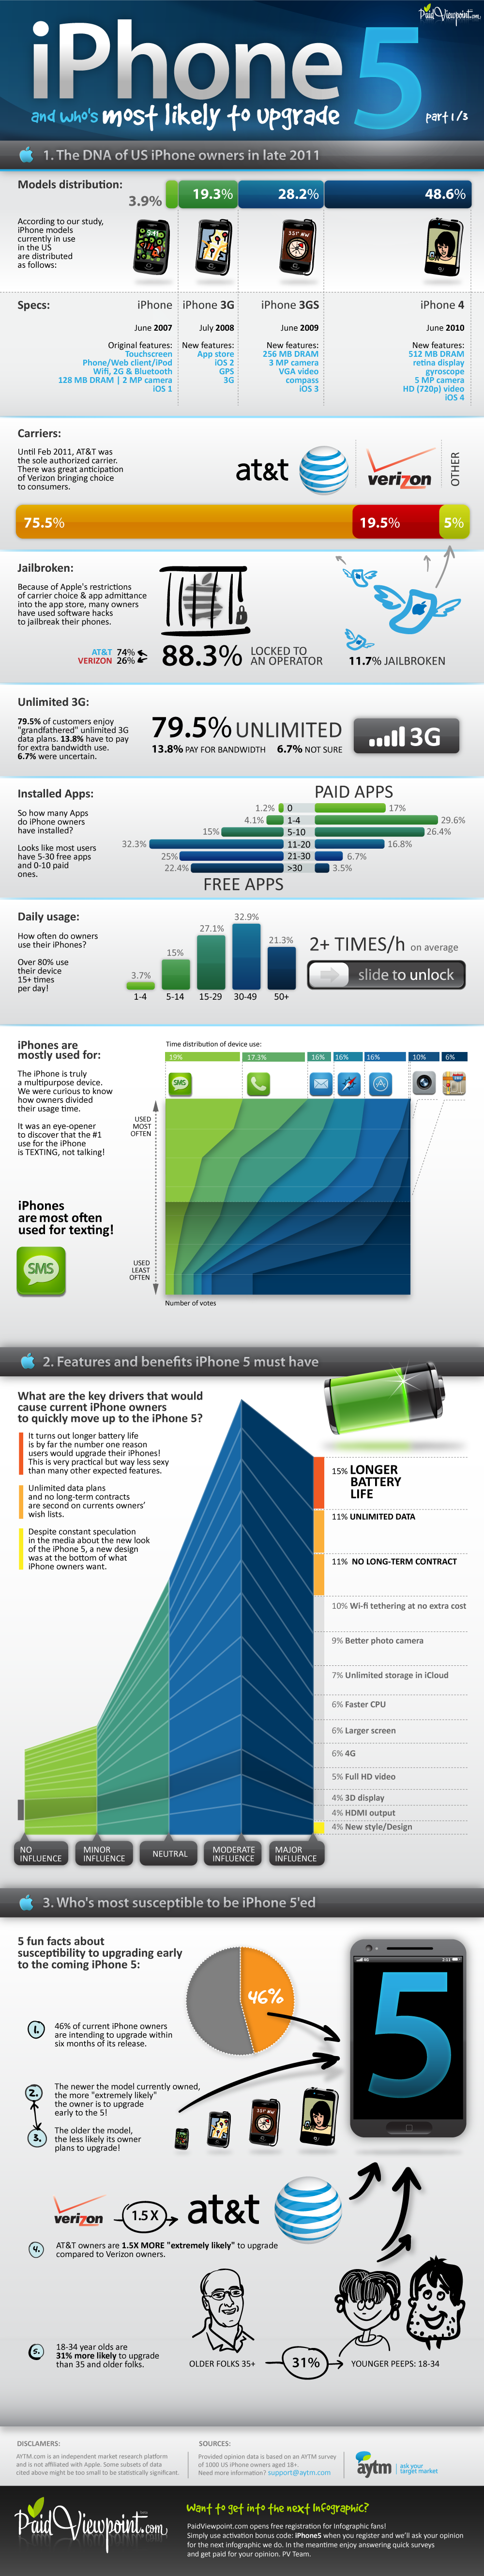 iPhone 5 INFOGRAPHIC | PaidViewpoint.com